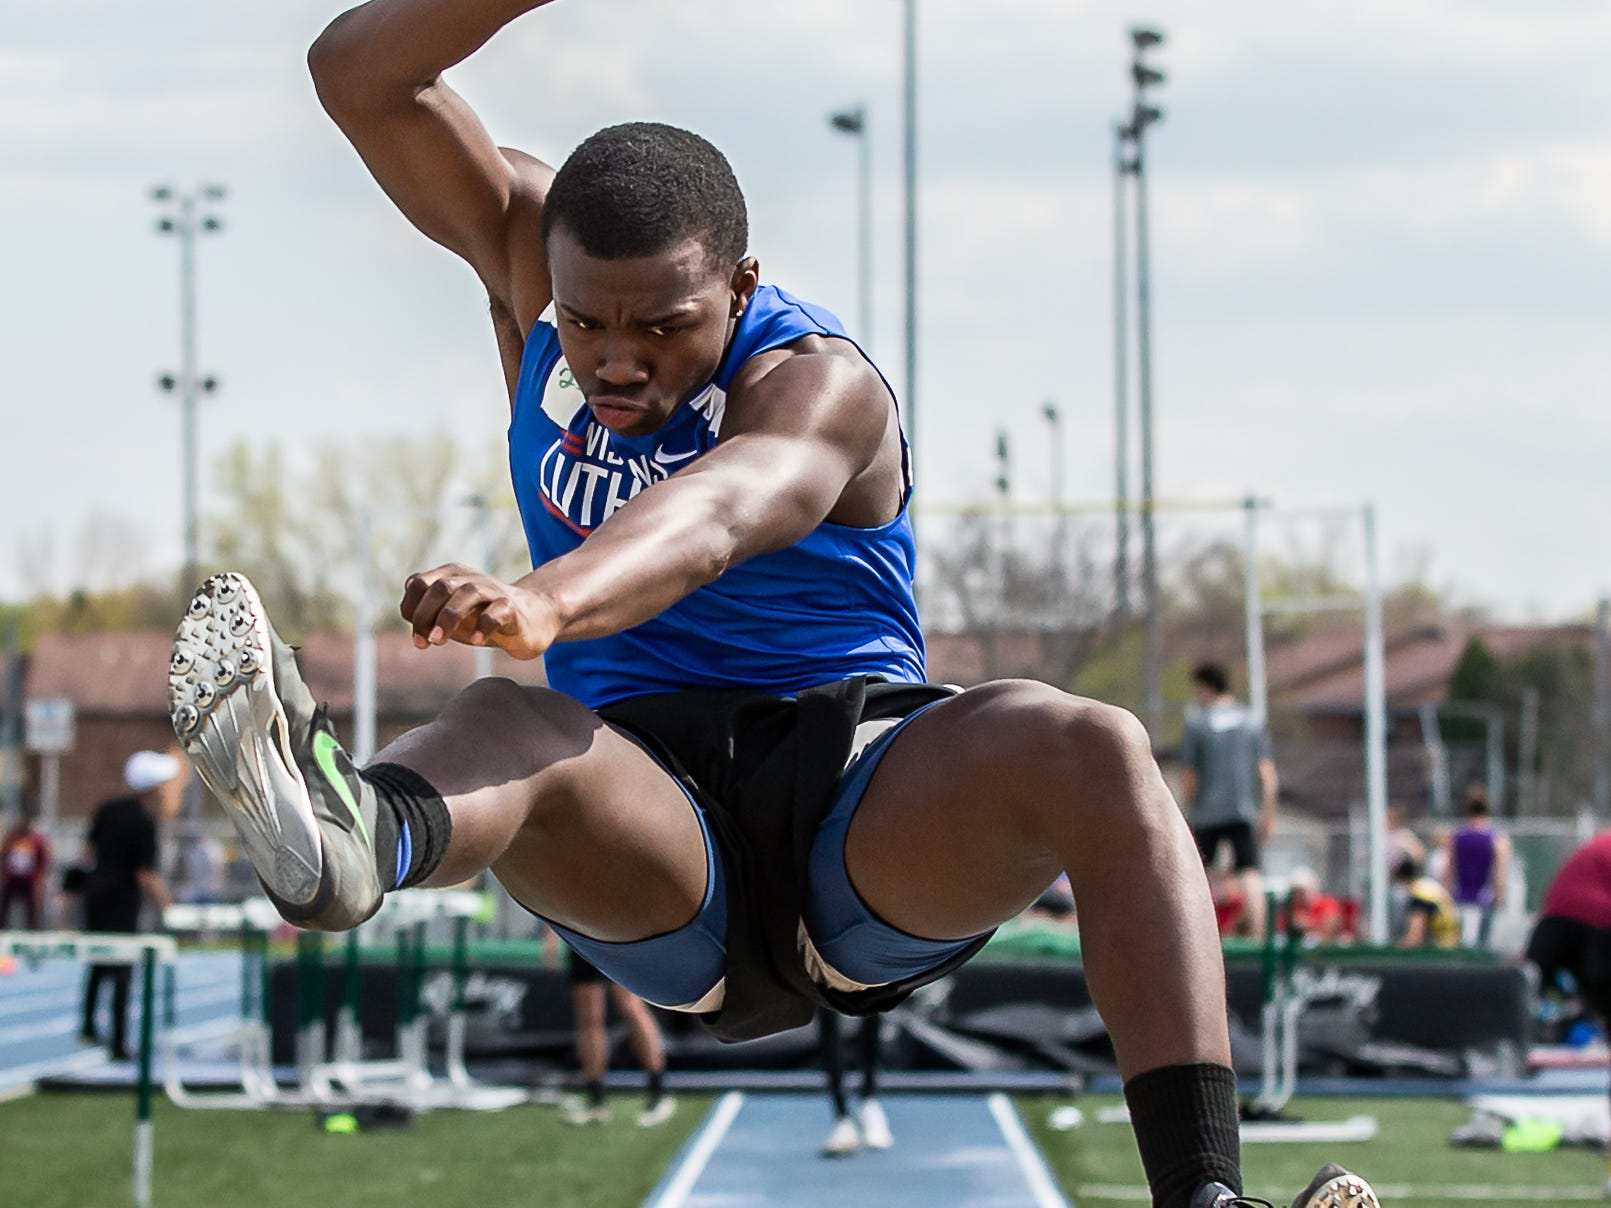 Wisconsin Lutheran's Jeremiah Hampton competes in the long jump at the Woodland Conference Track and Field Championships in West Allis on Tuesday, May 14, 2019.